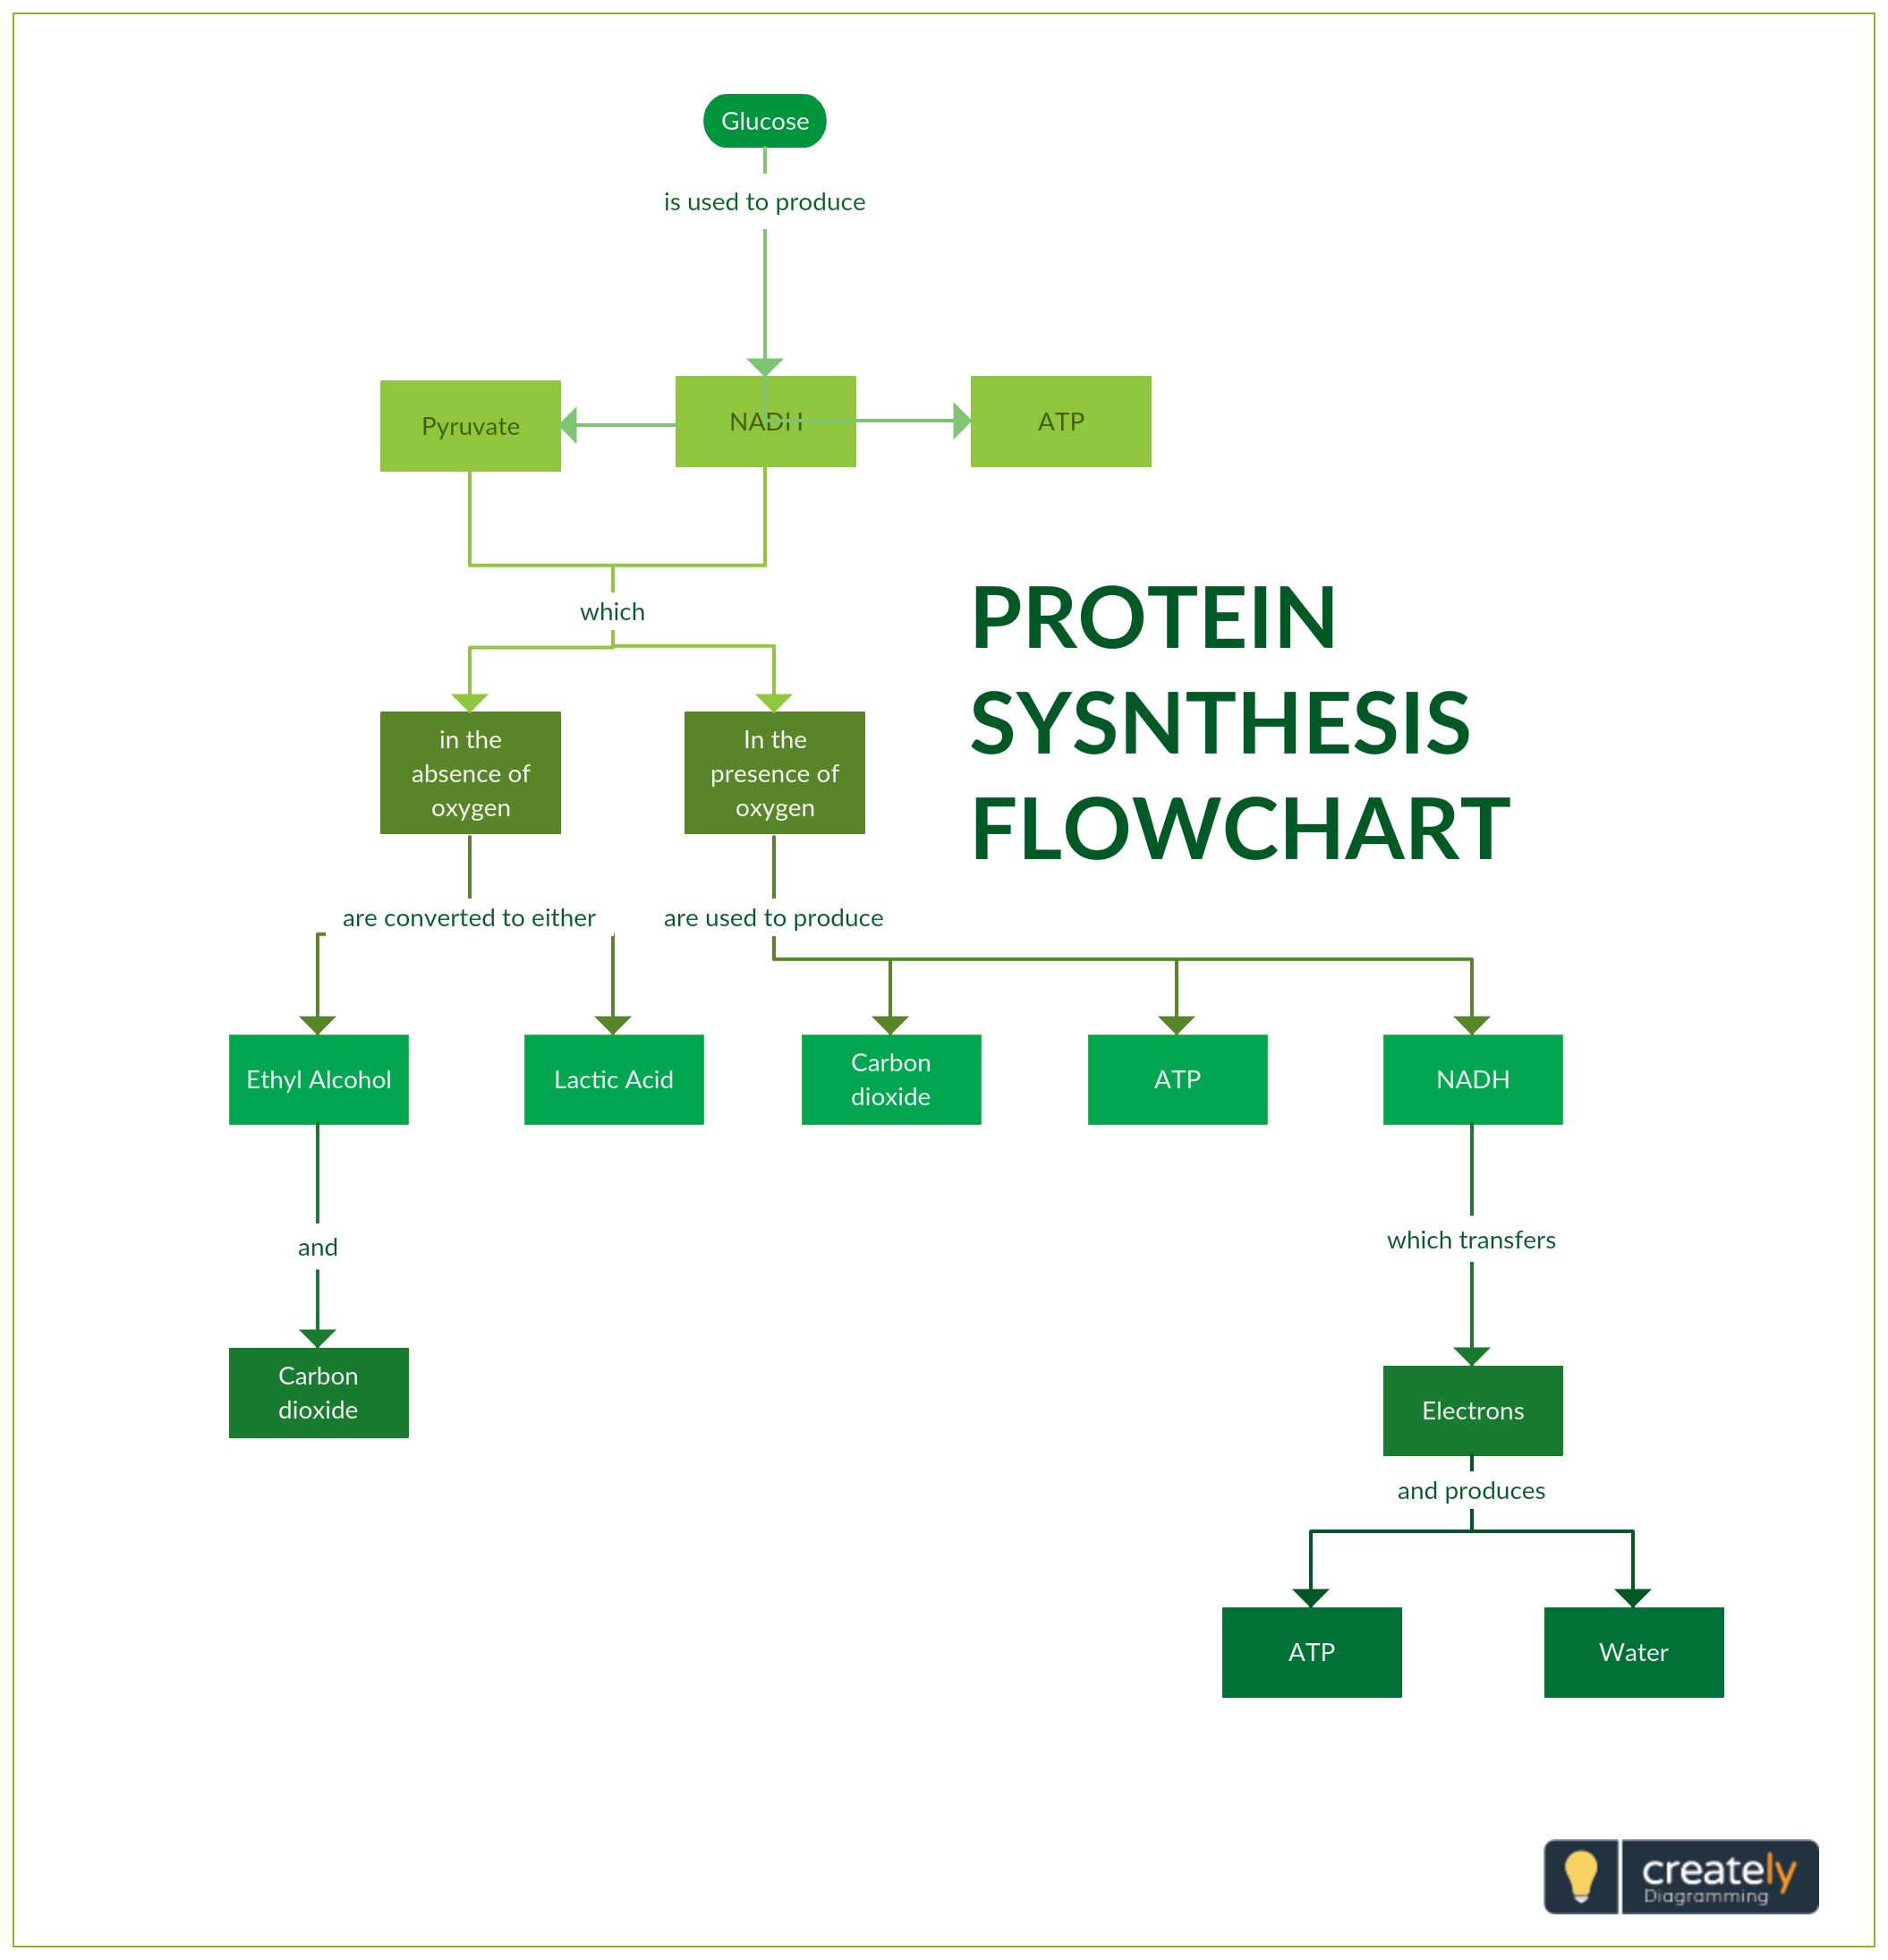 medium resolution of protein synthesis flowchart protein synthesis flow chart shows the process of one of the most complicated biosynthesis mechanisms